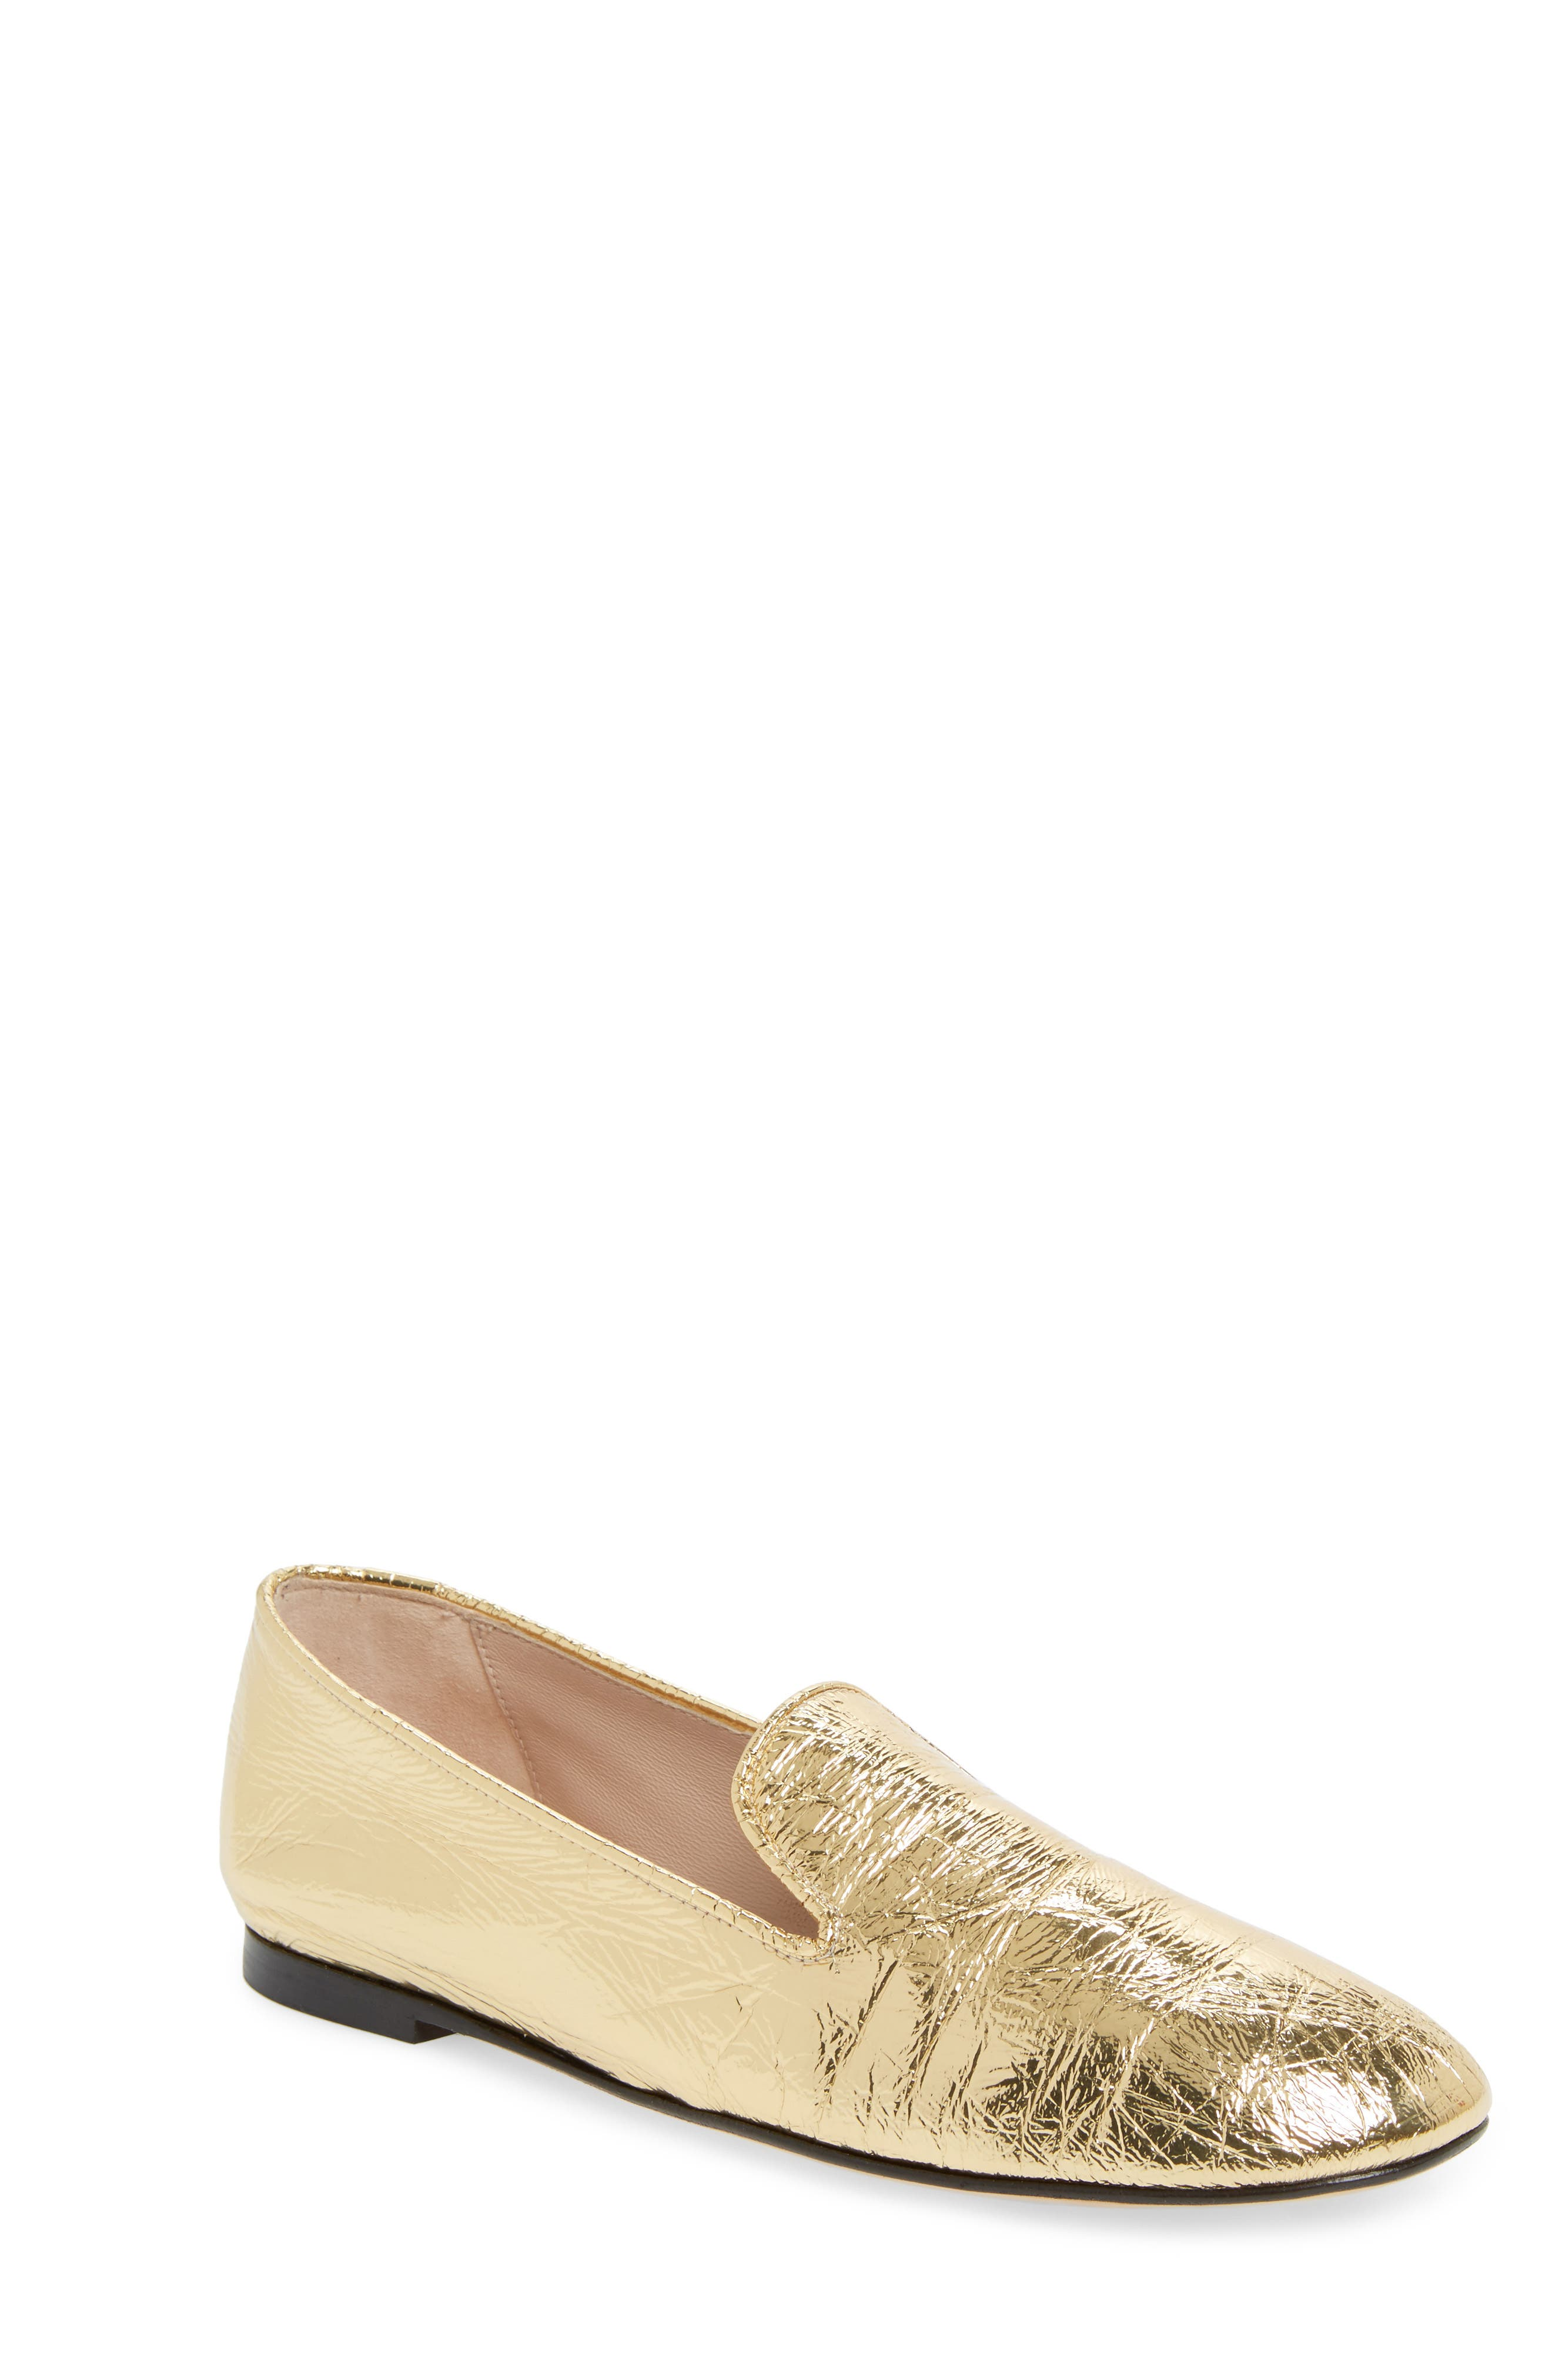 Myguy Venetian Loafer,                             Main thumbnail 1, color,                             Gold Look